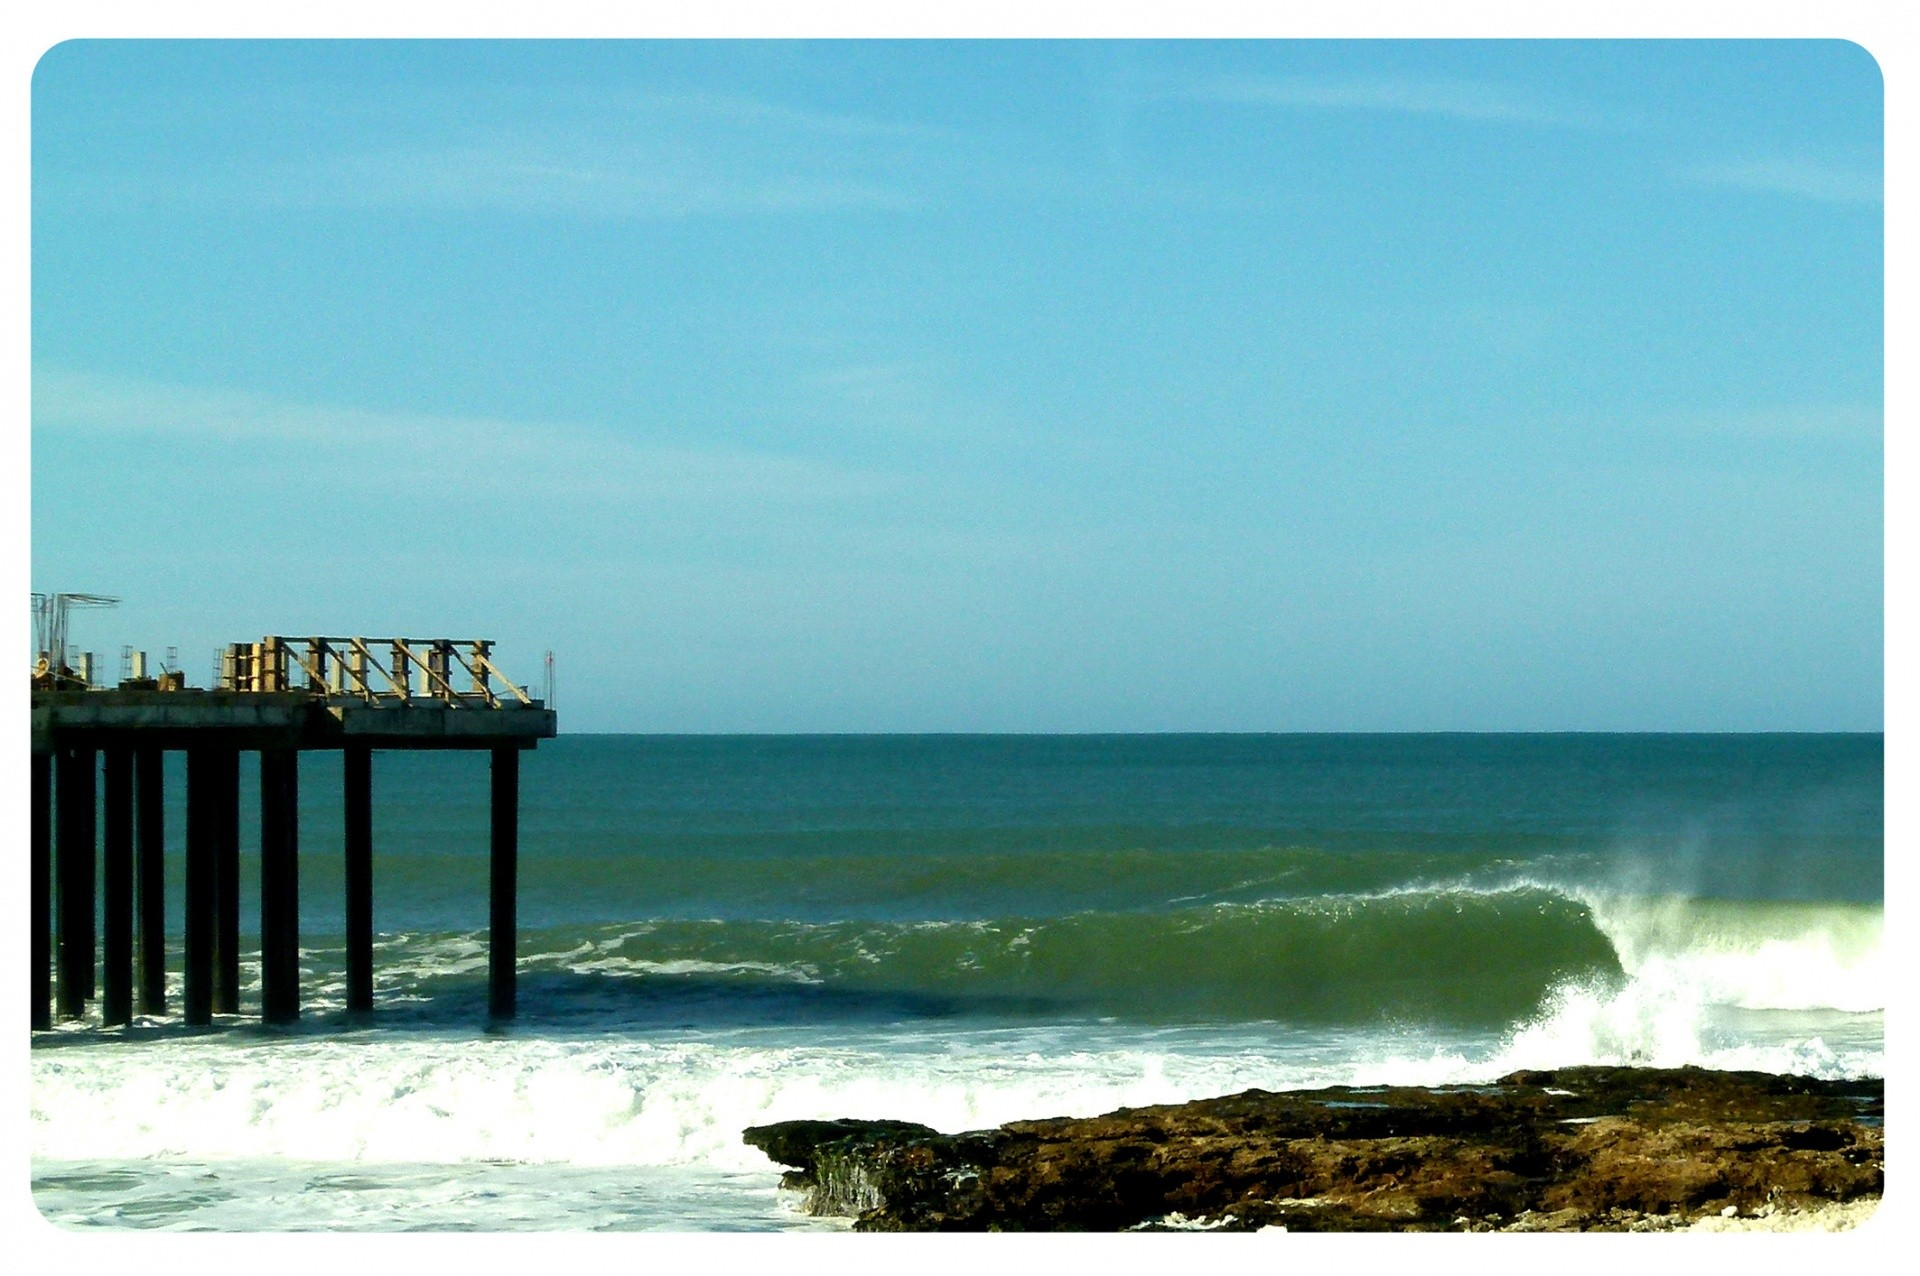 Peiiland's photo of El Muelle